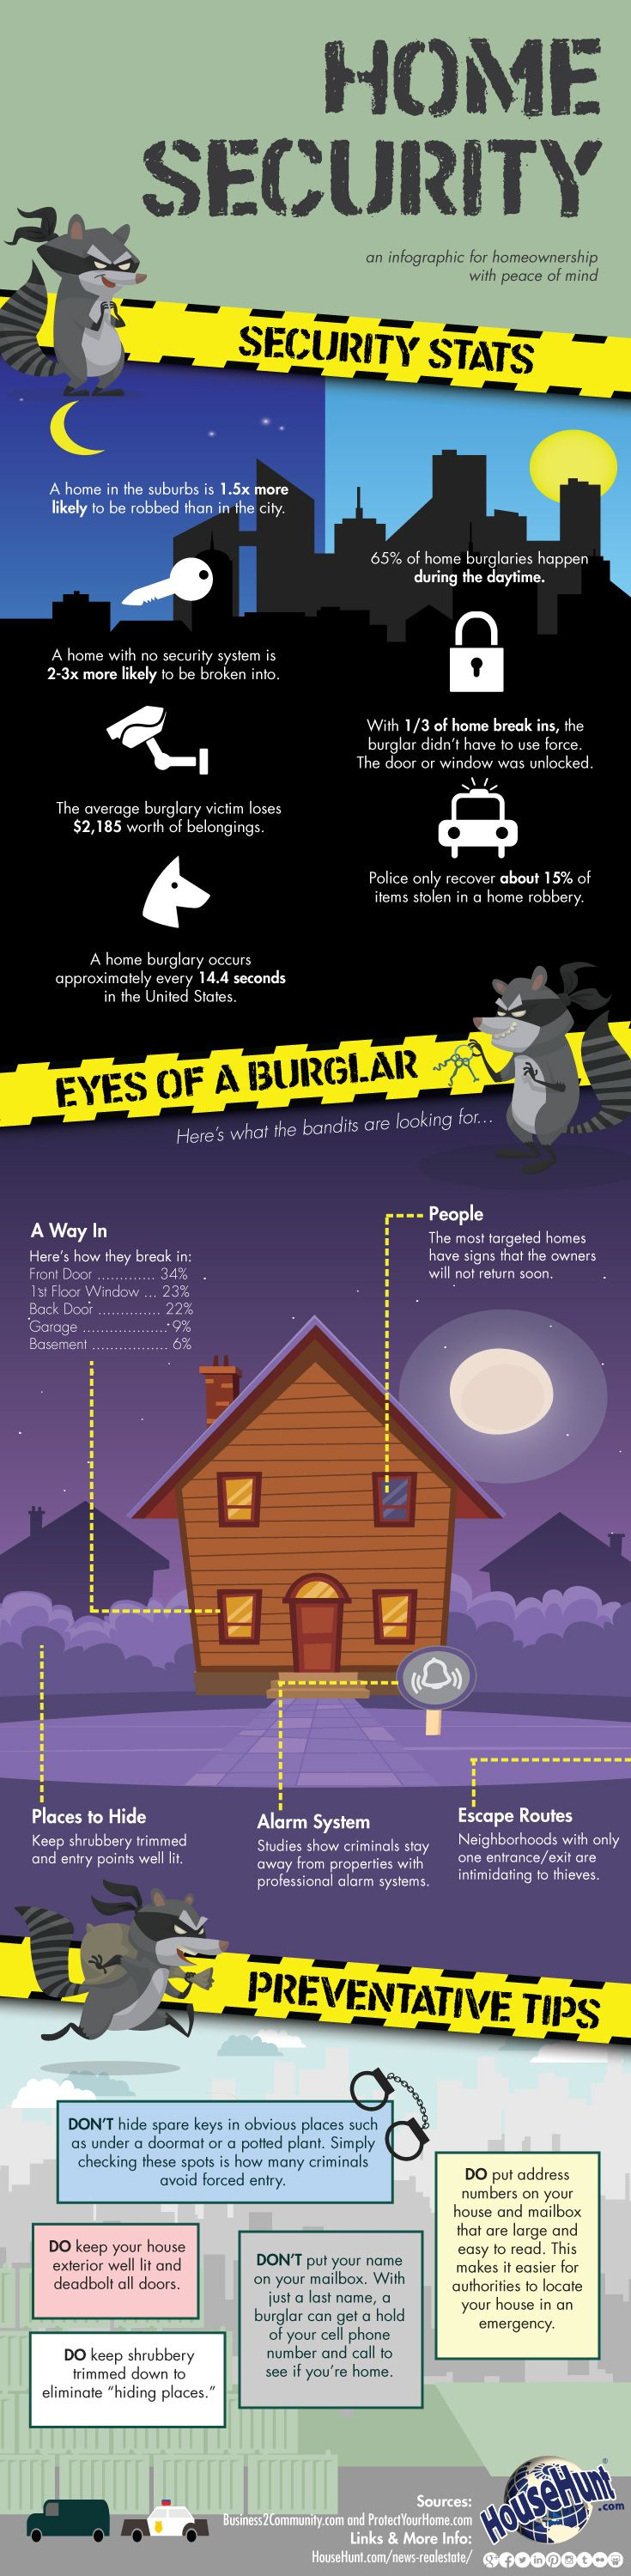 Home Security [Infographic] From an alarm system to an action plan, home security will give you peace of mind as a homeowner. Here are some statistics about home burglaries, what to keep an eye out for, and how to keep your home protected.